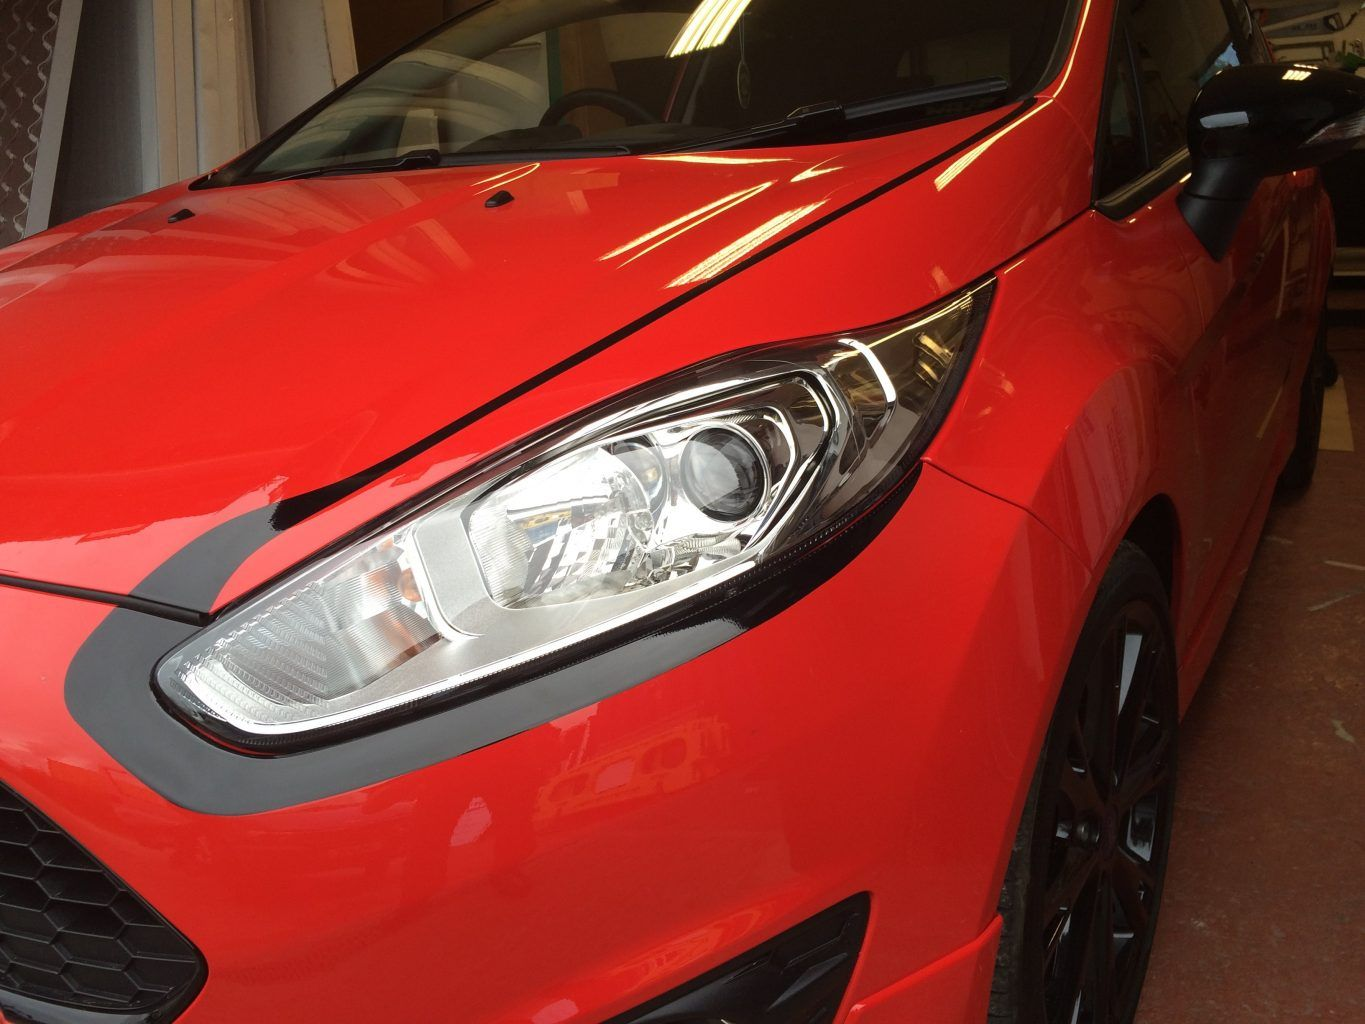 Vehicle wrap headlight detailing